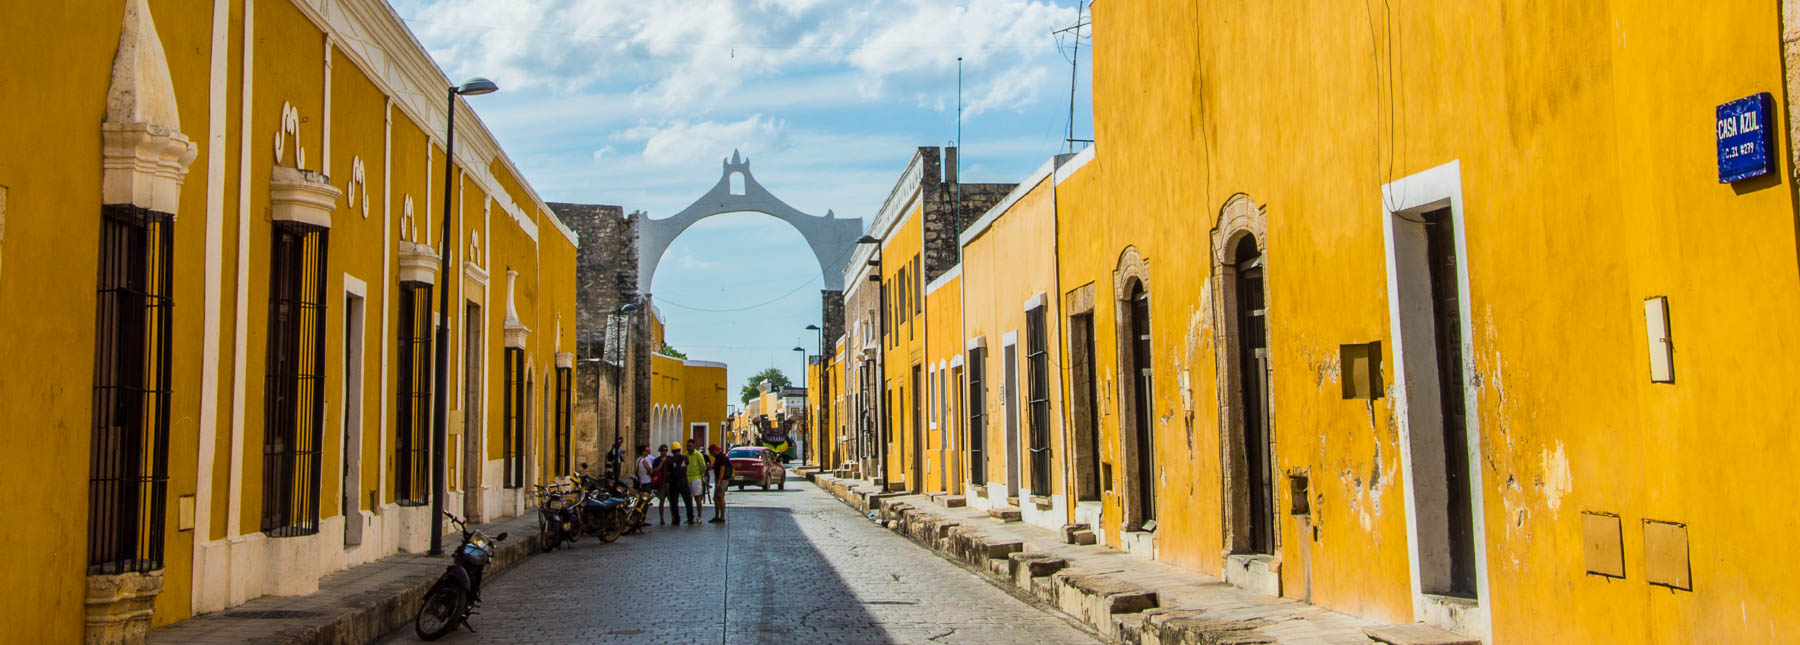 A view of an Izamal street with yellow painted houses on the Yucatan Road Trip.